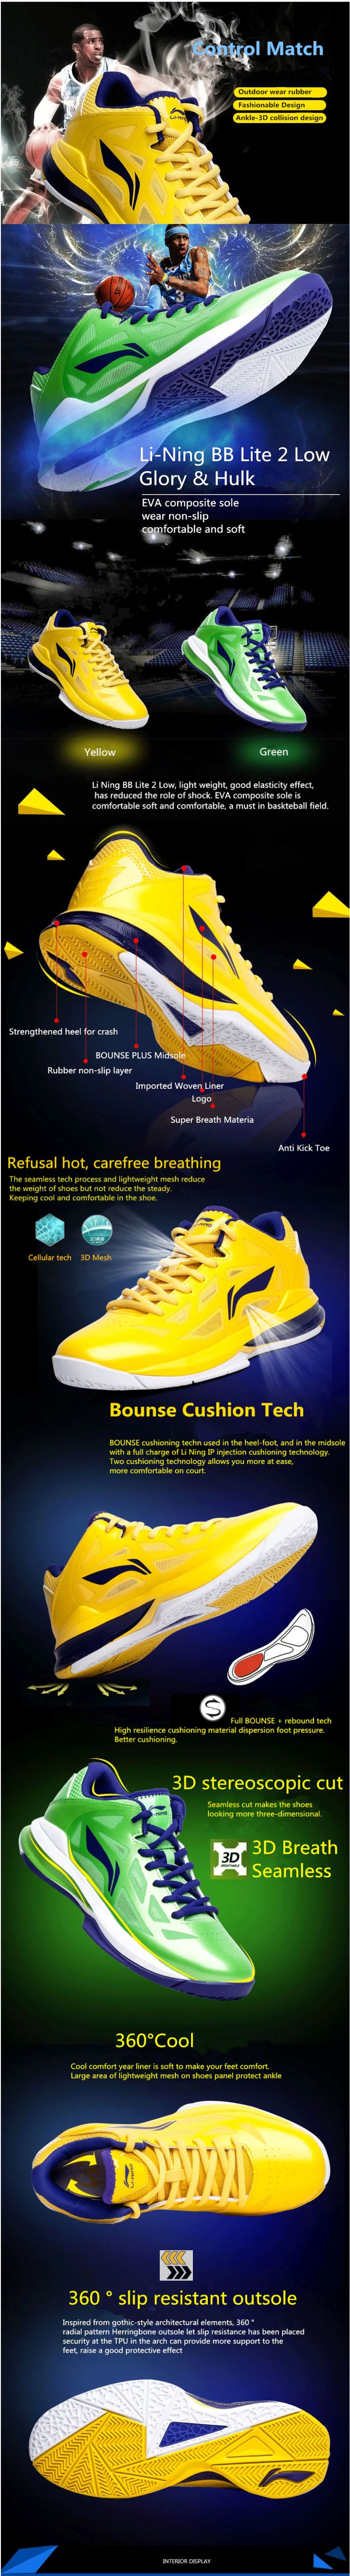 Li Ning CBA BB Lite 2 is professional basketball shoes with low. This shoes is lightweight and have good elasticity effect, making you feet comfortable. And the slip resistant outsole can provide more safety to your feet, and raise a good protective effect.